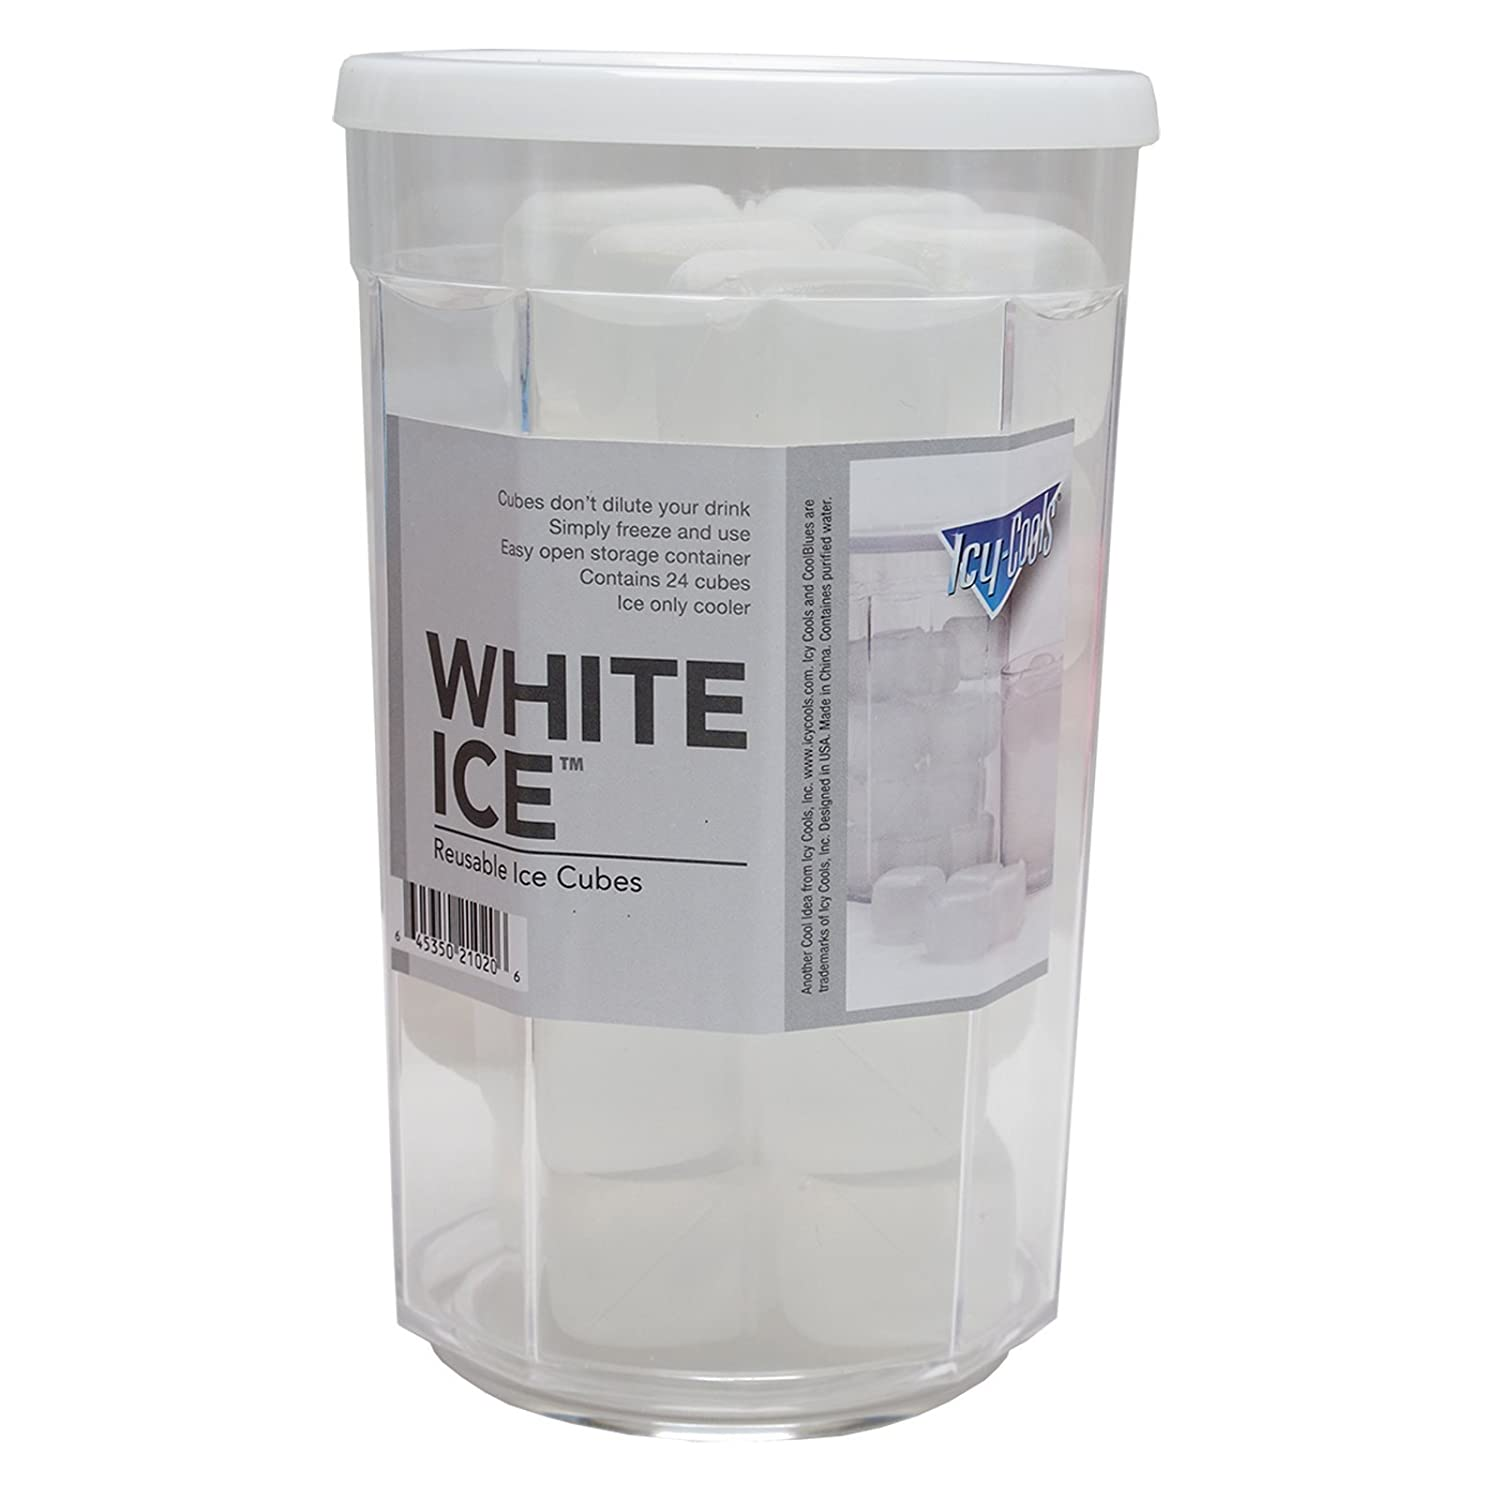 Amazon.com: White Ice (TM) Reusable Ice Cubes for your Drinks 24 ...